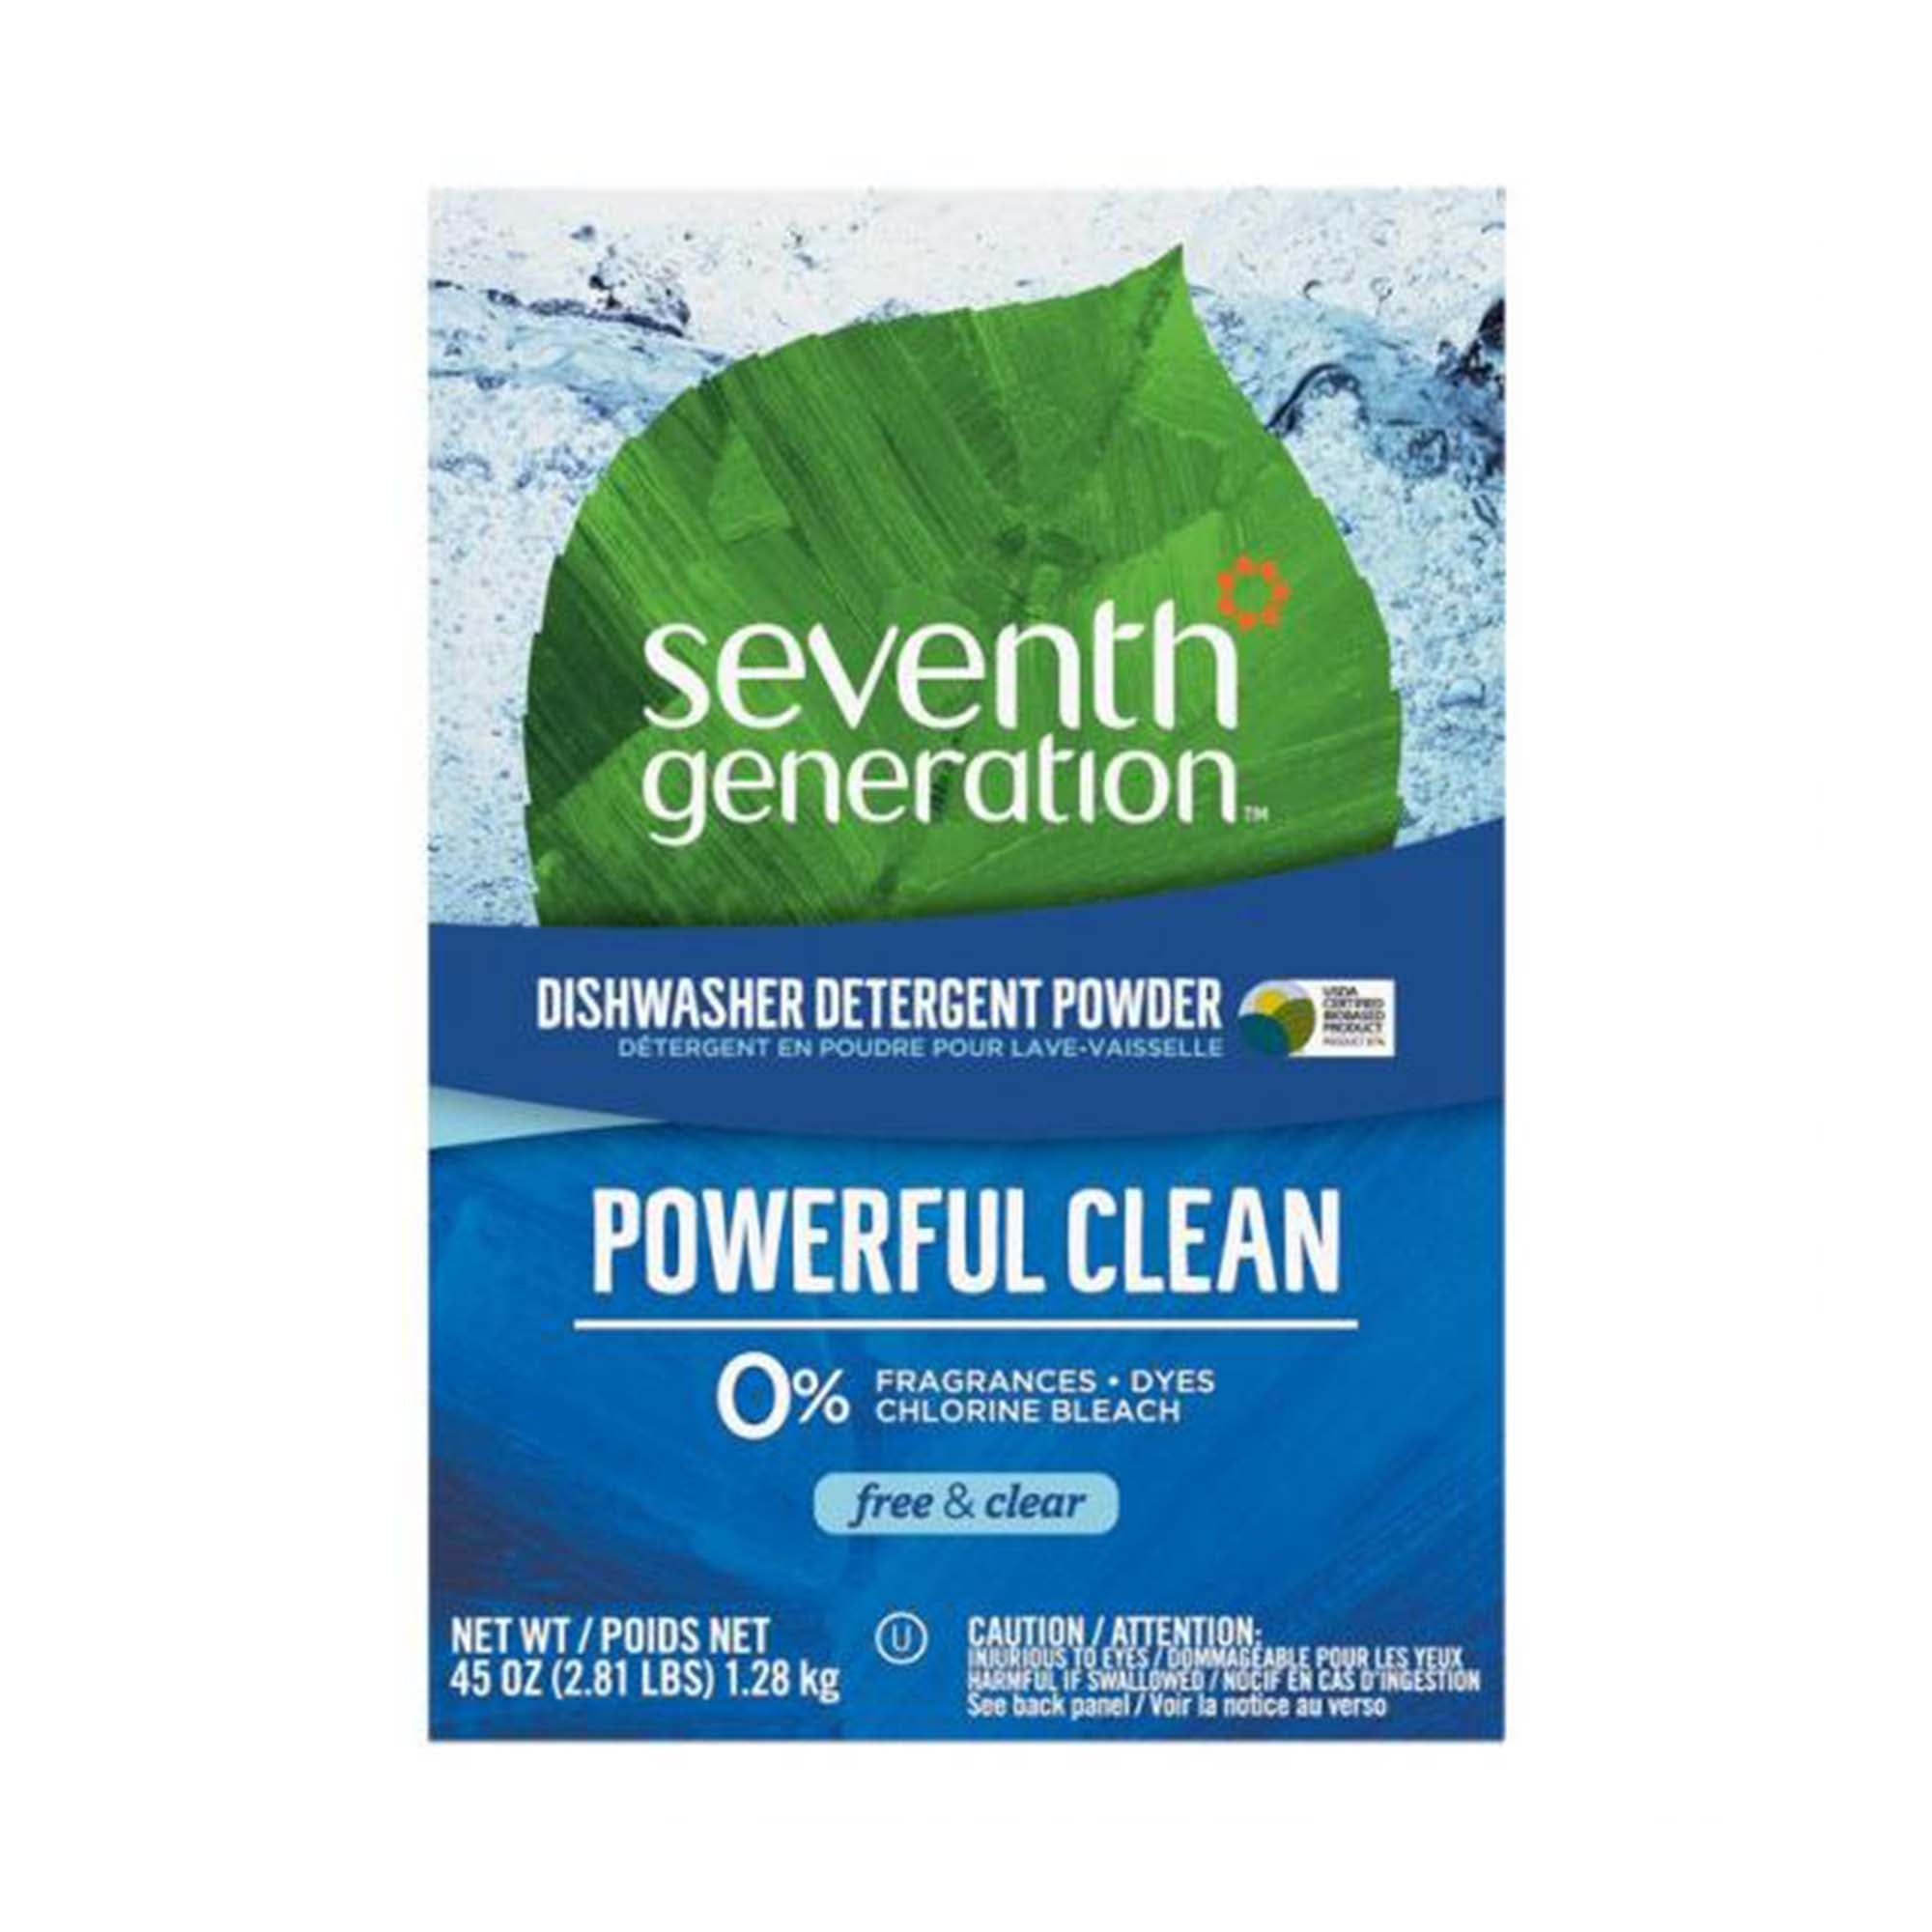 45 oz blue box of seventh generation powerful clean detergent